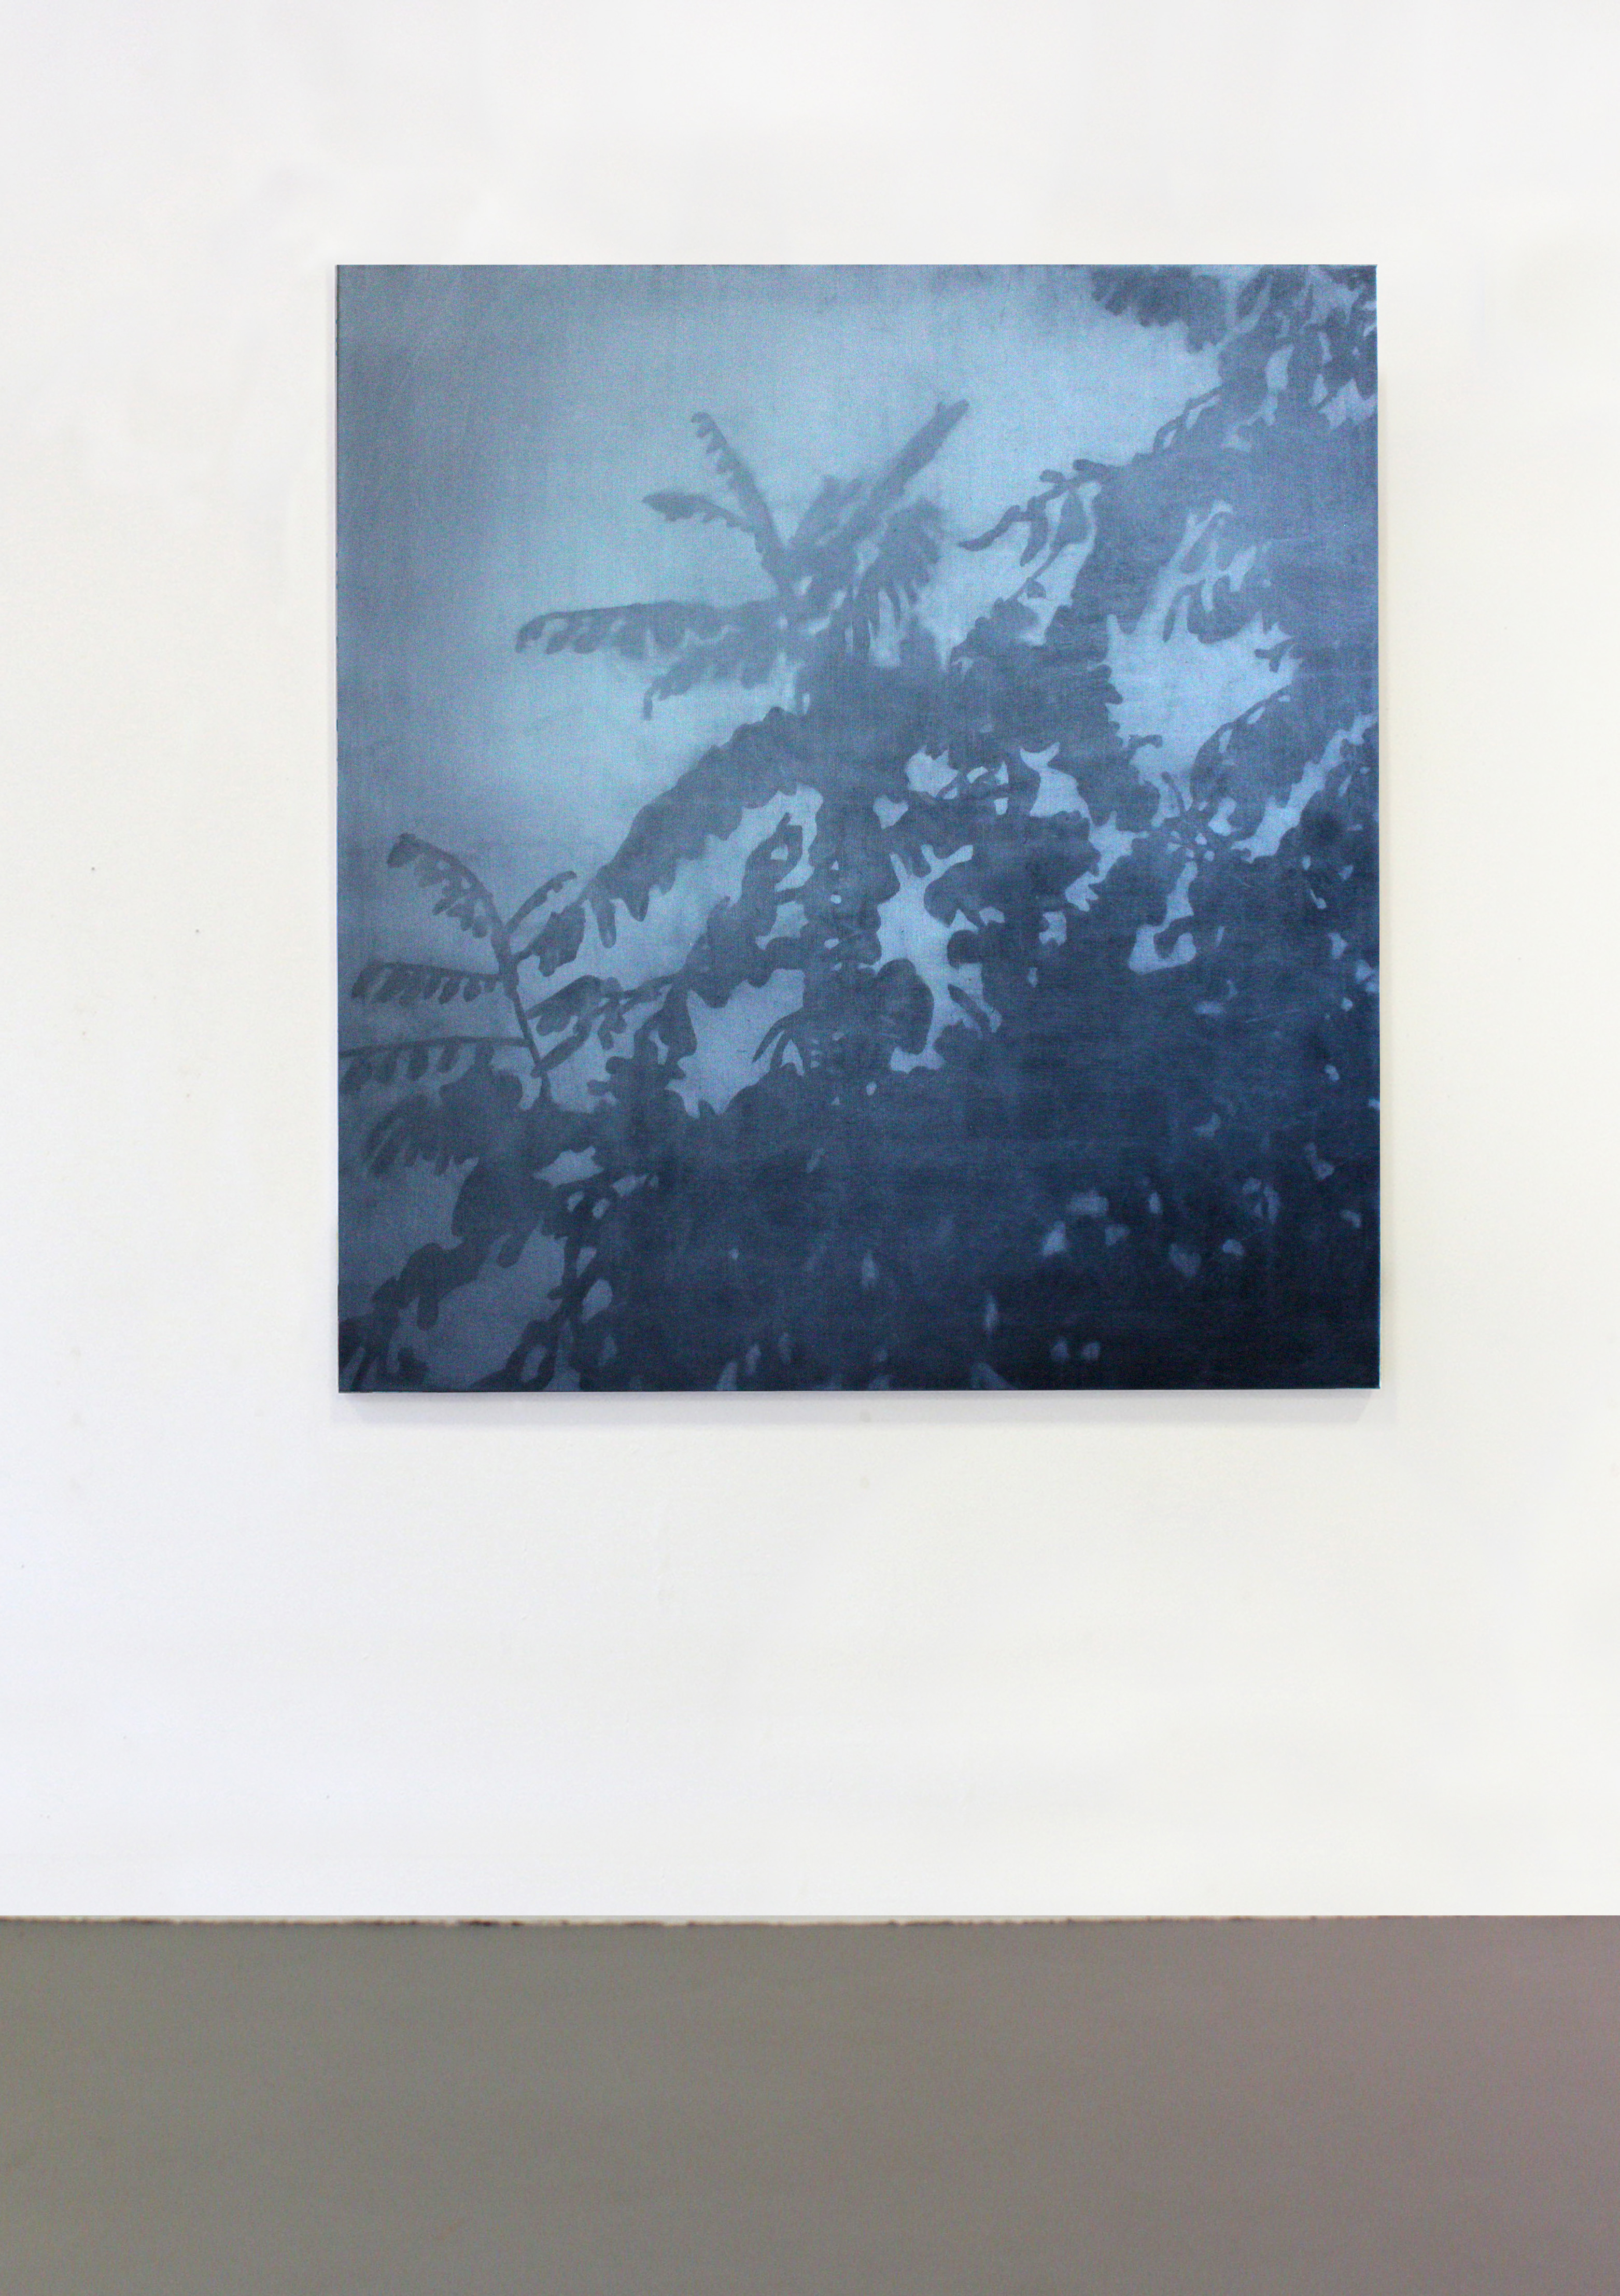 Clément Davout, La demie obscurité du dehors,2019, oil on vanvas, exhibition view, courtesy Galerie Laure Roynette